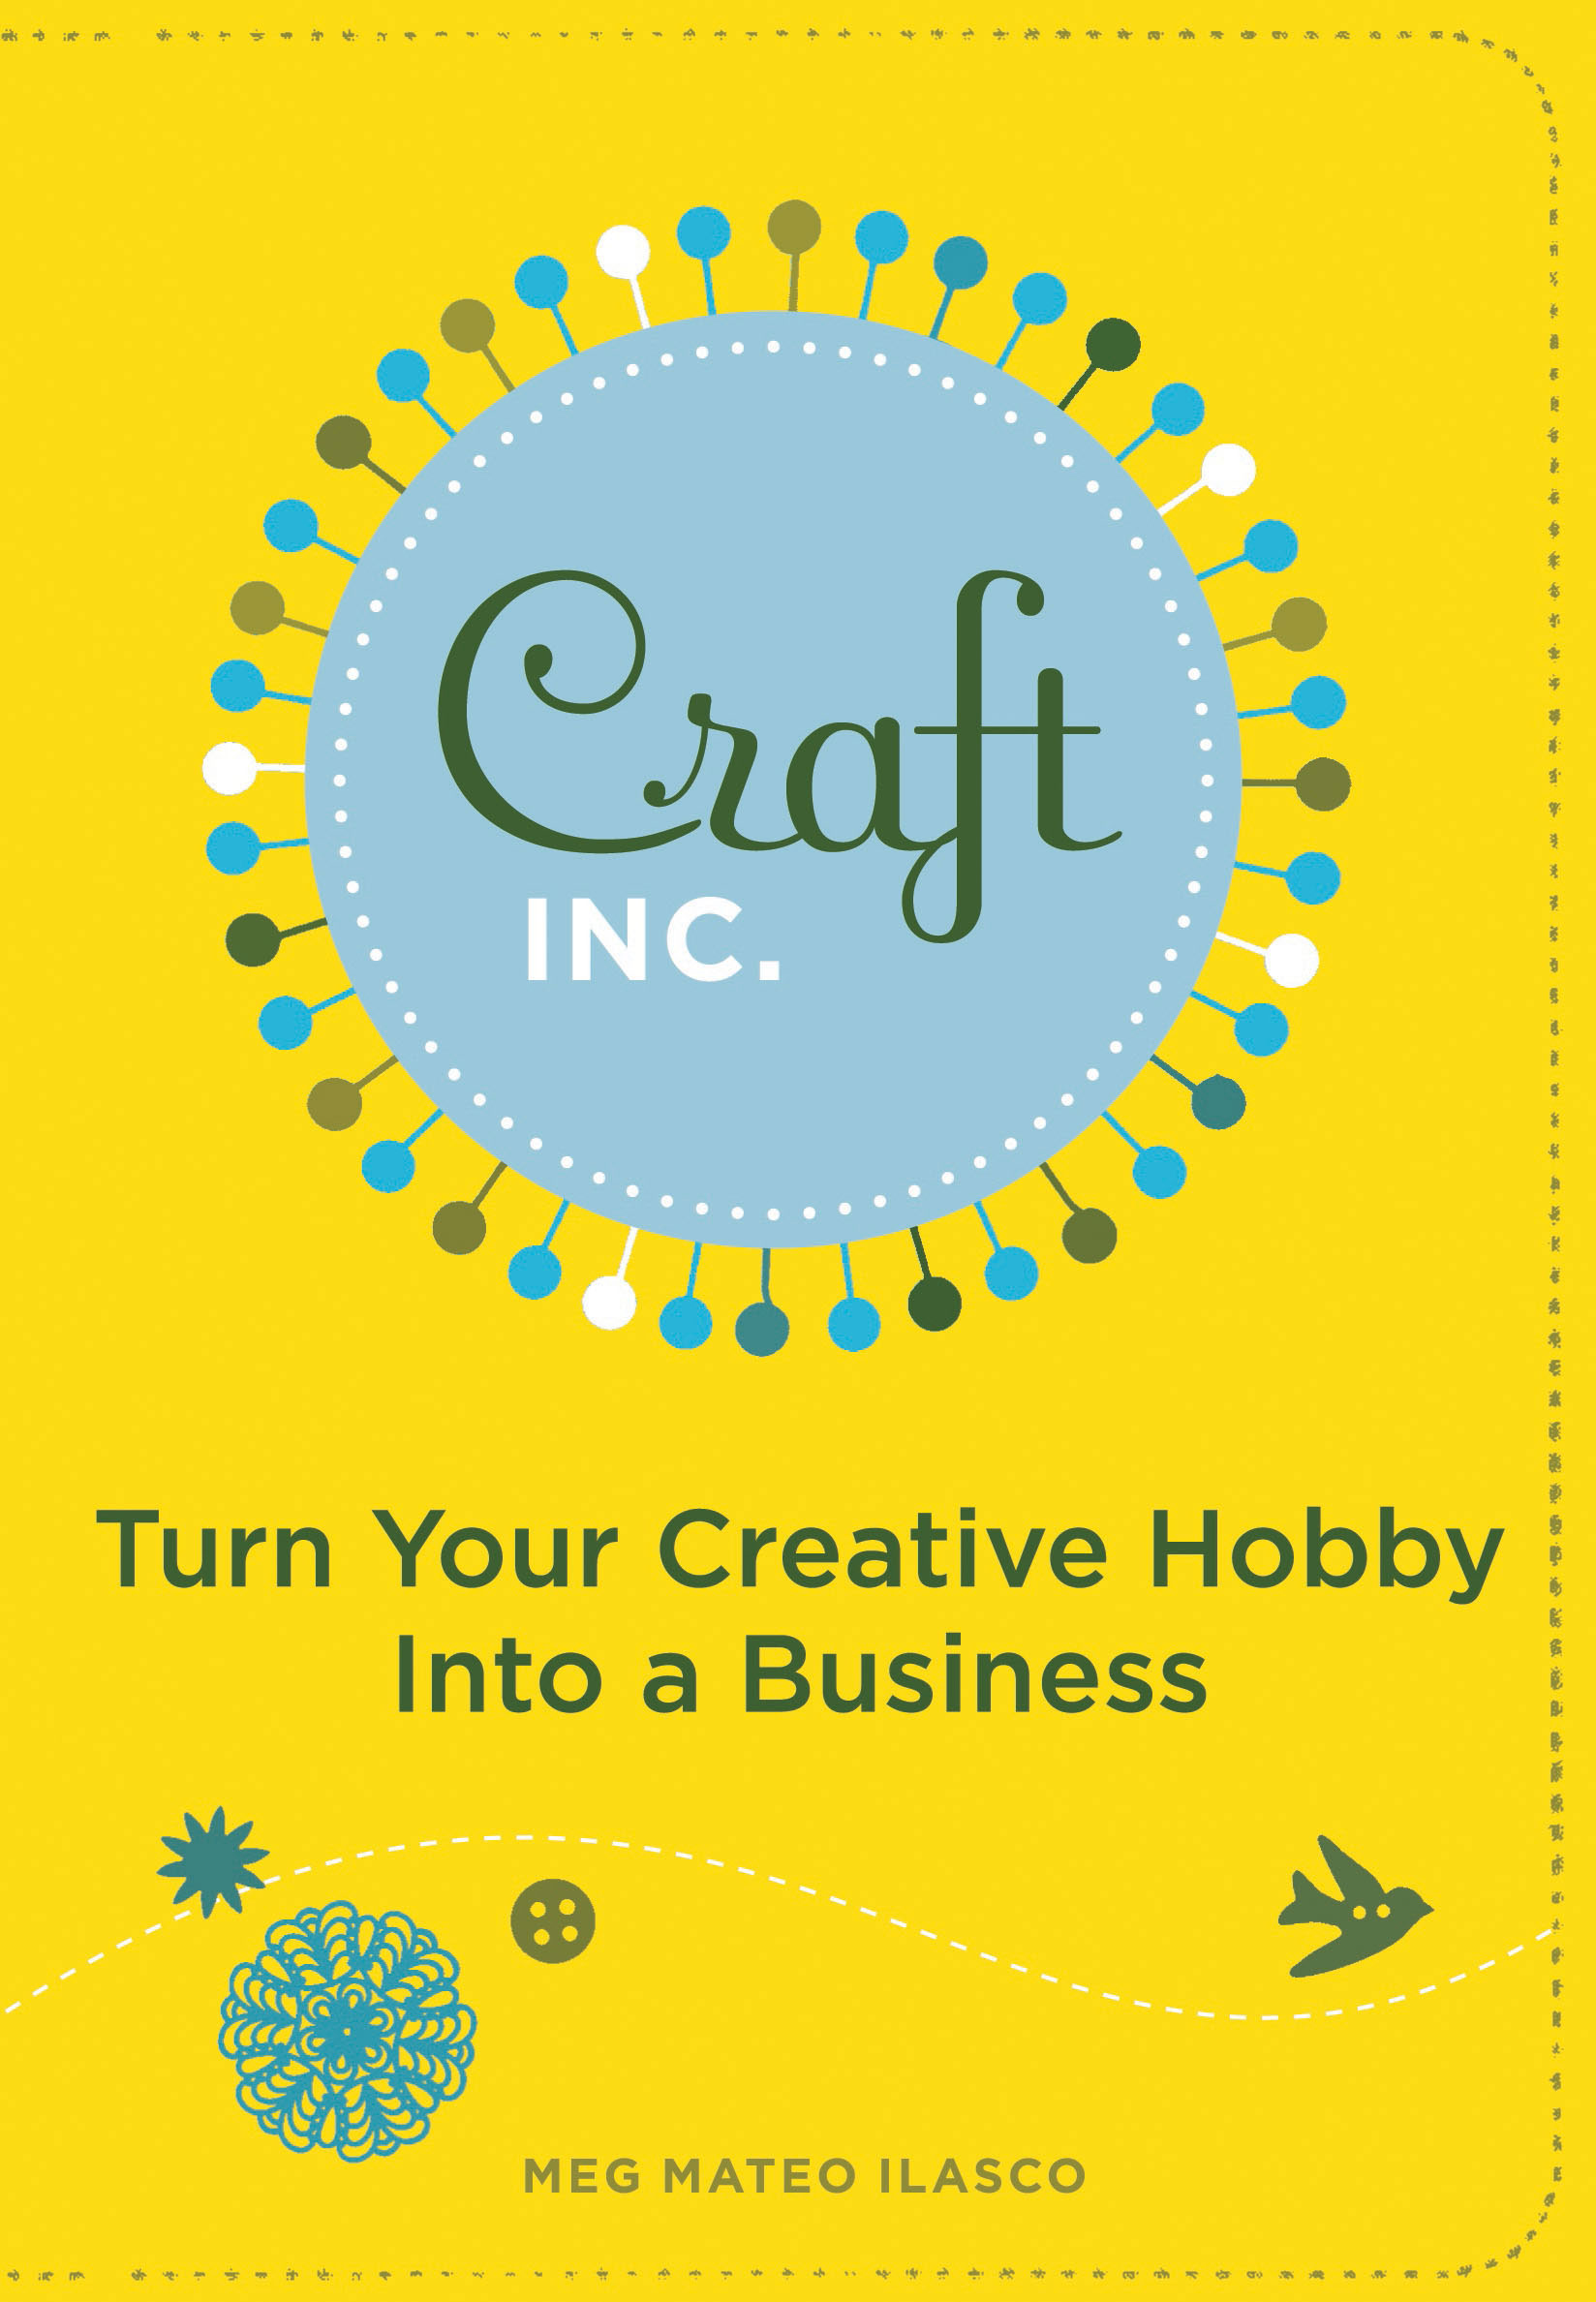 Craft, Inc. Turn Your Creative Hobby into a Business